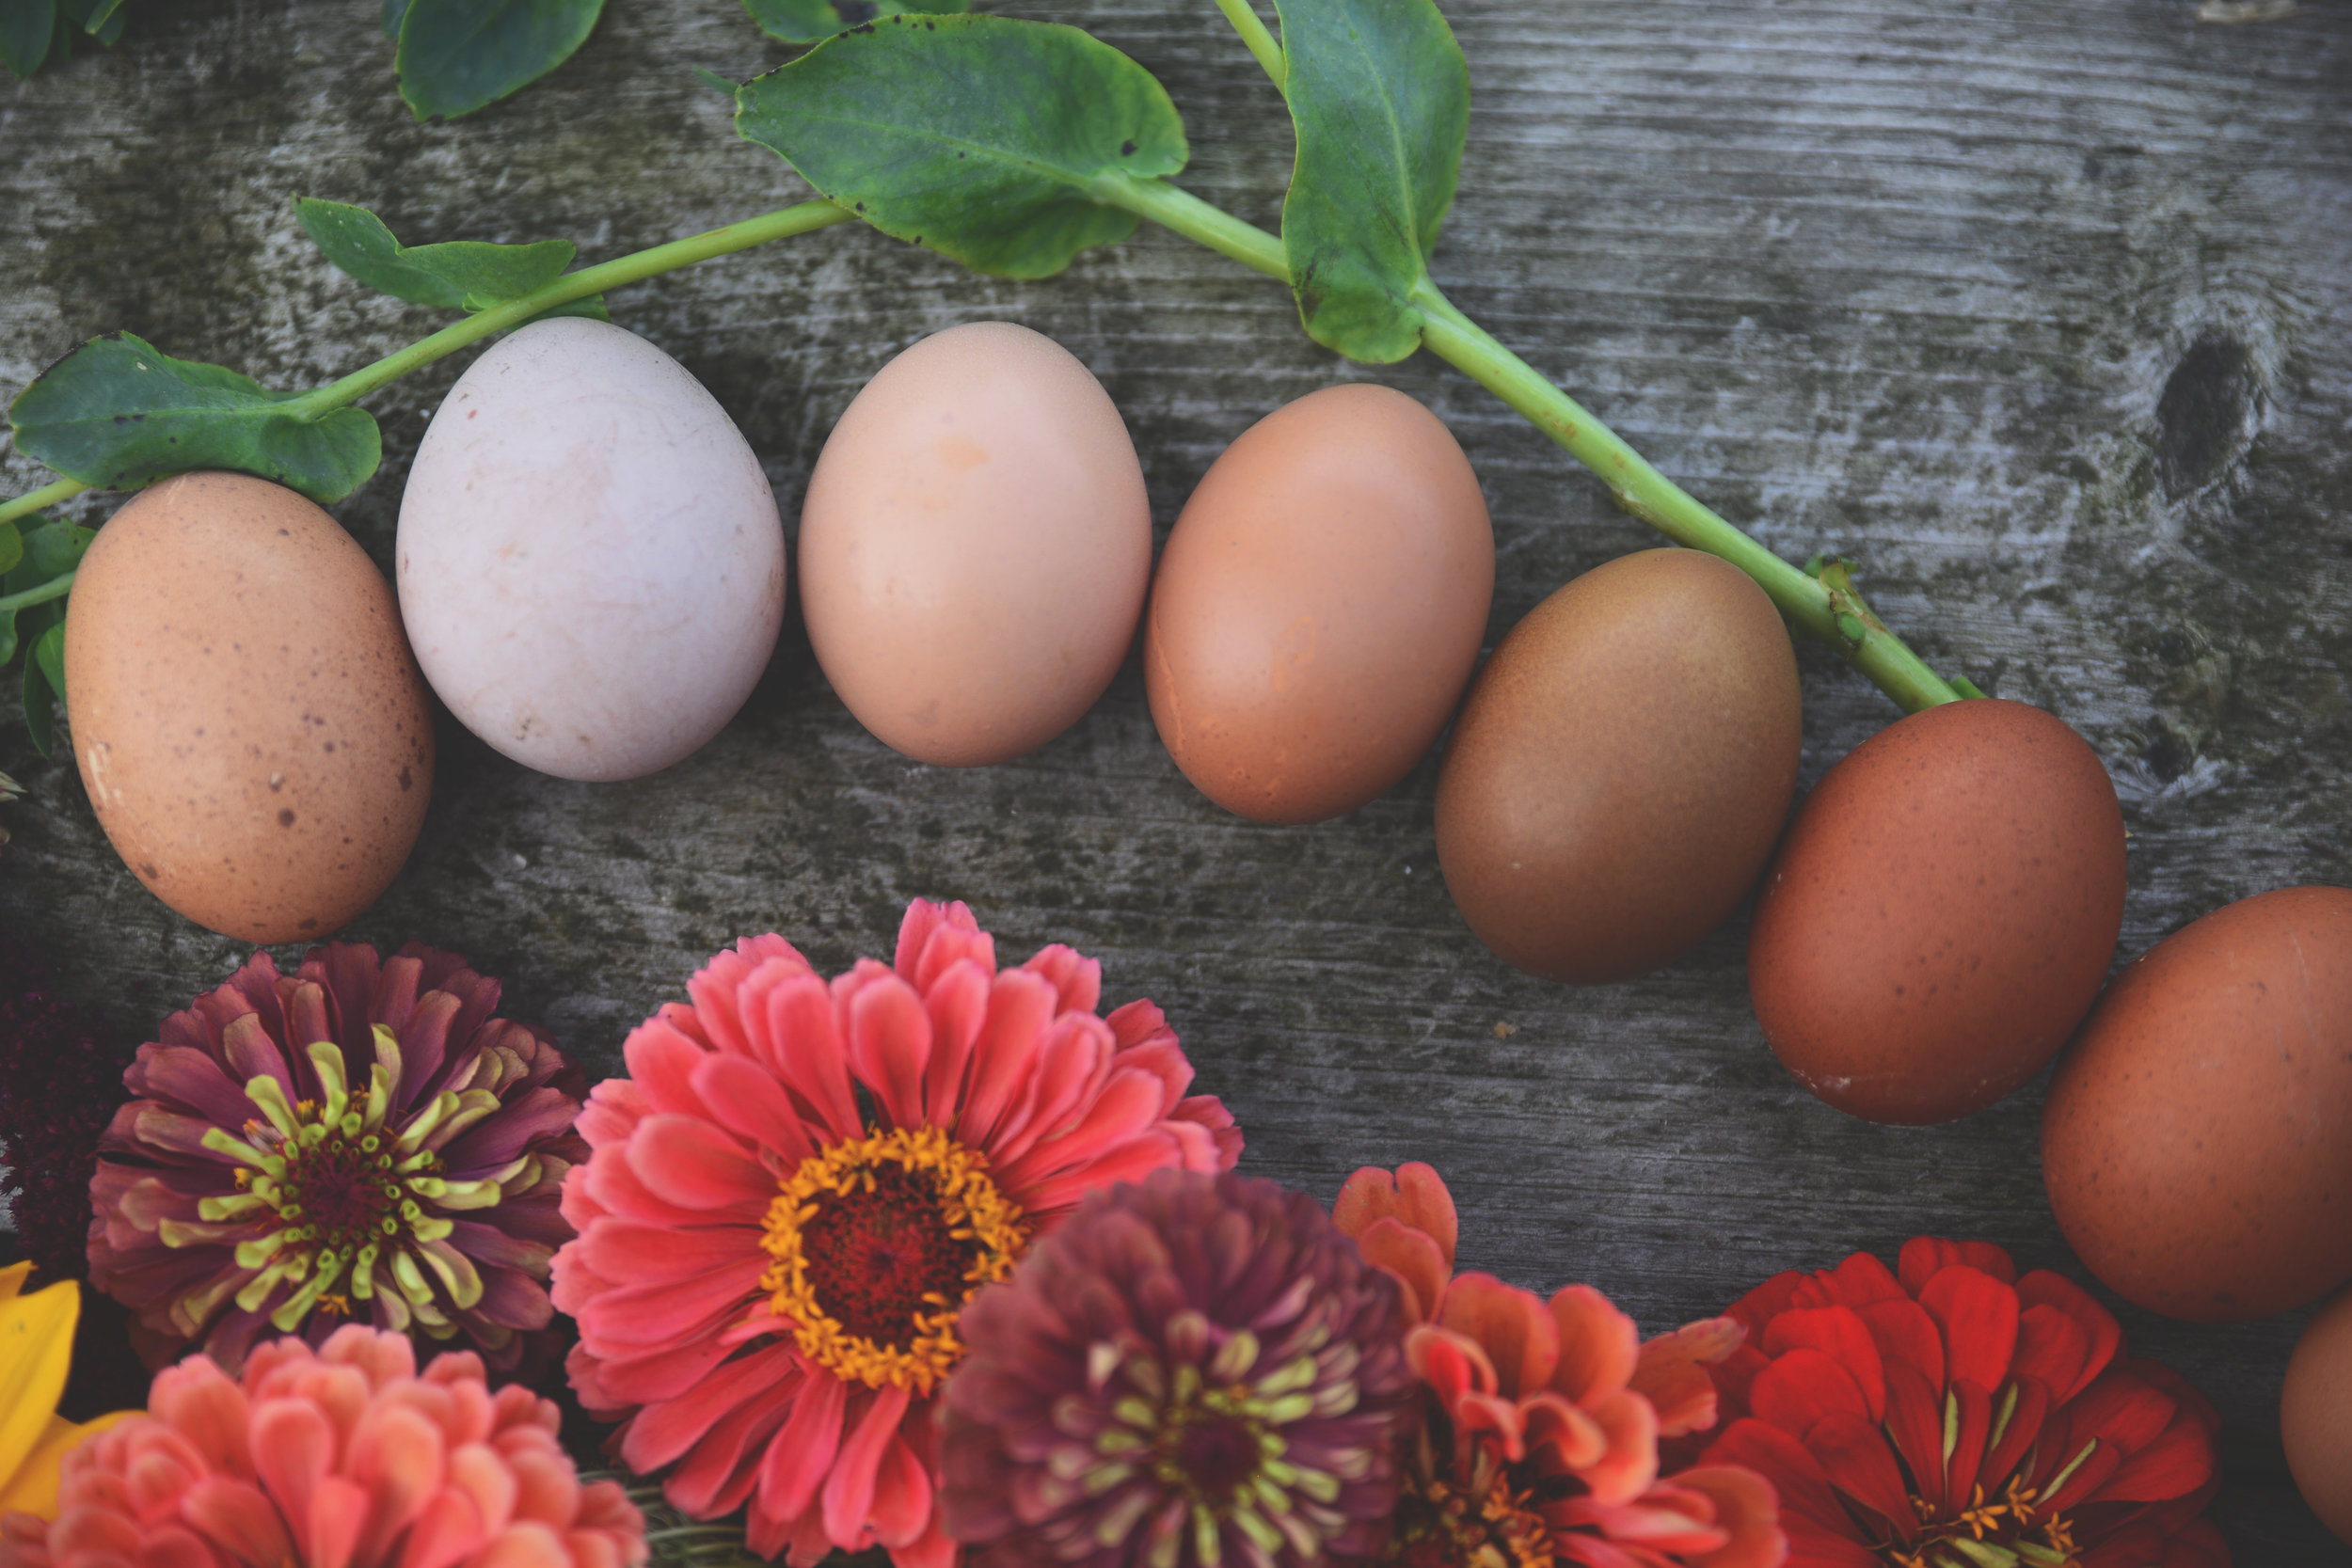 SEP + OCT 2019 - We are back! Sep 1, 2019 | We are taking orders for immediate Sep + Oct shipping across the U.S. We are in limited supply this time of year, but we do have some great ones to offer (perhaps for a broody hen). *We were closed Jul + Aug. It was too hot to ship eggs.